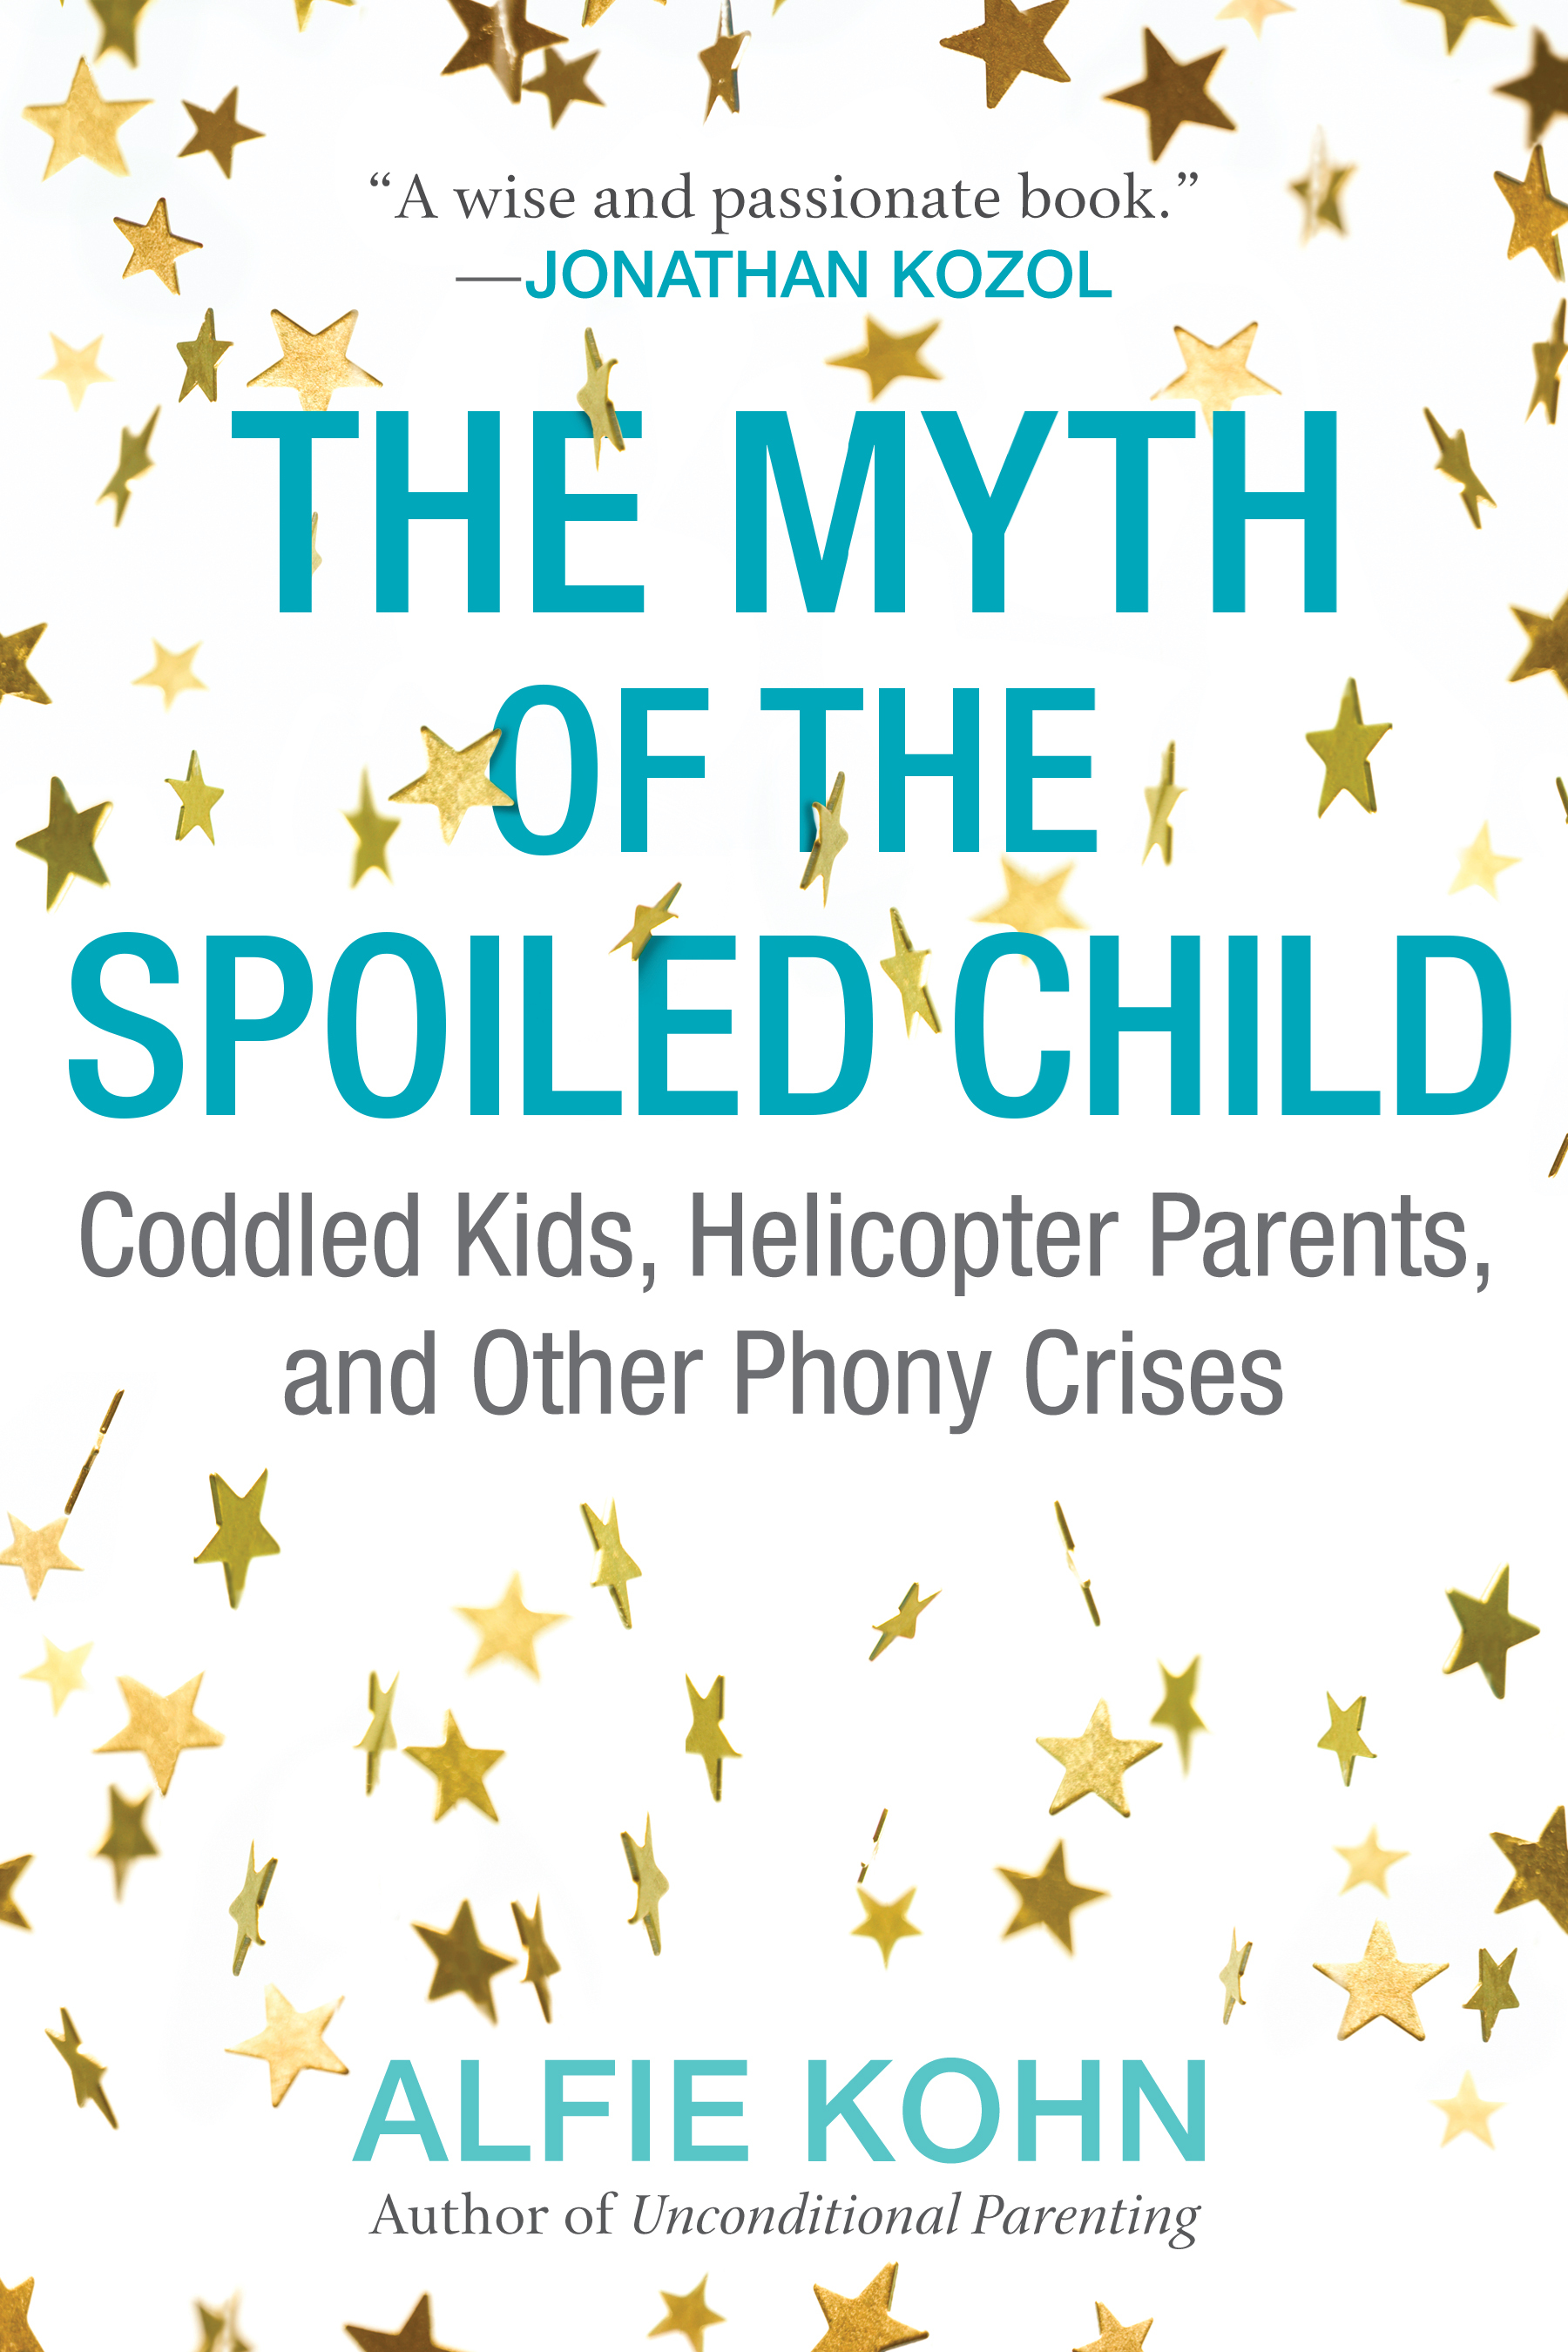 The Myth of the Spoiled Child. Challenging the Conventional Wisdom about Children and Parenting - Alfie Kohn